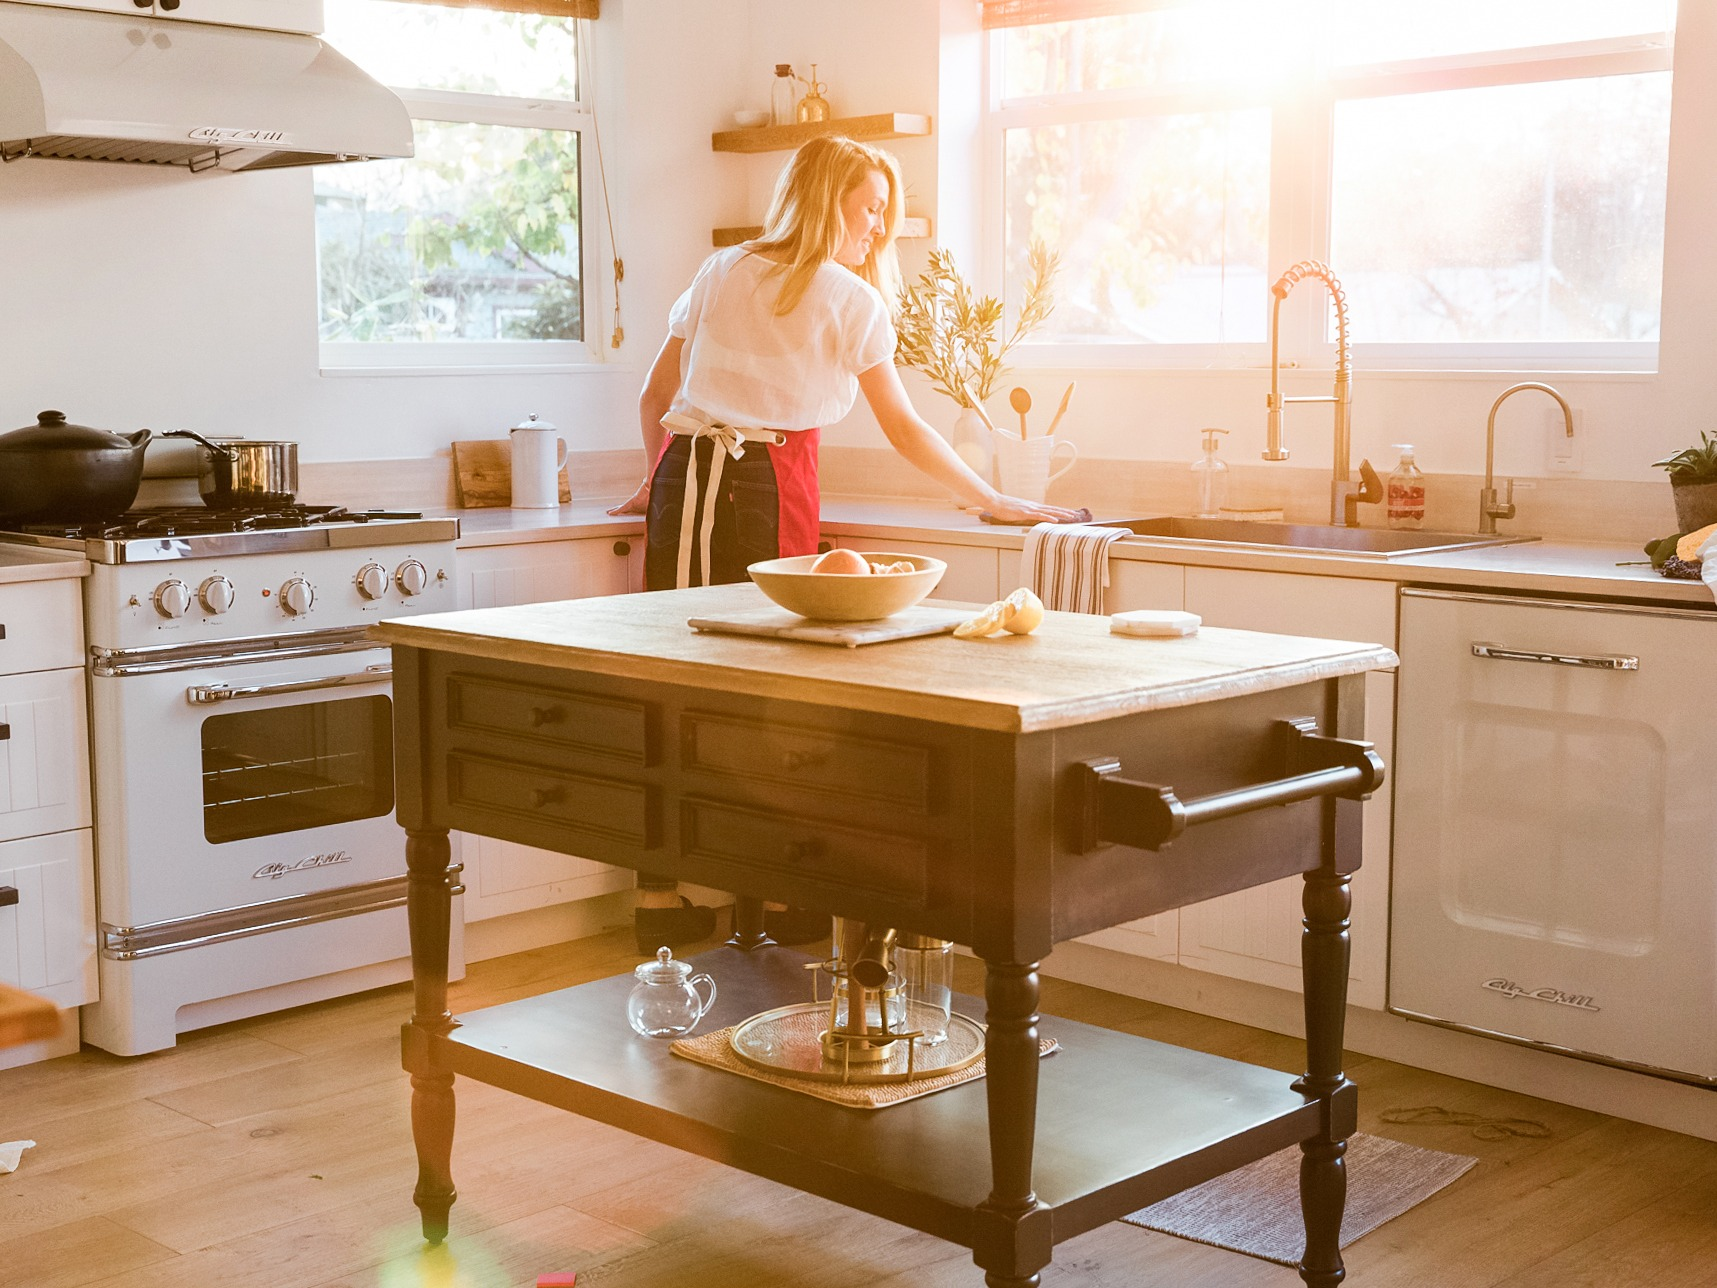 woman in the kitchen during sunset